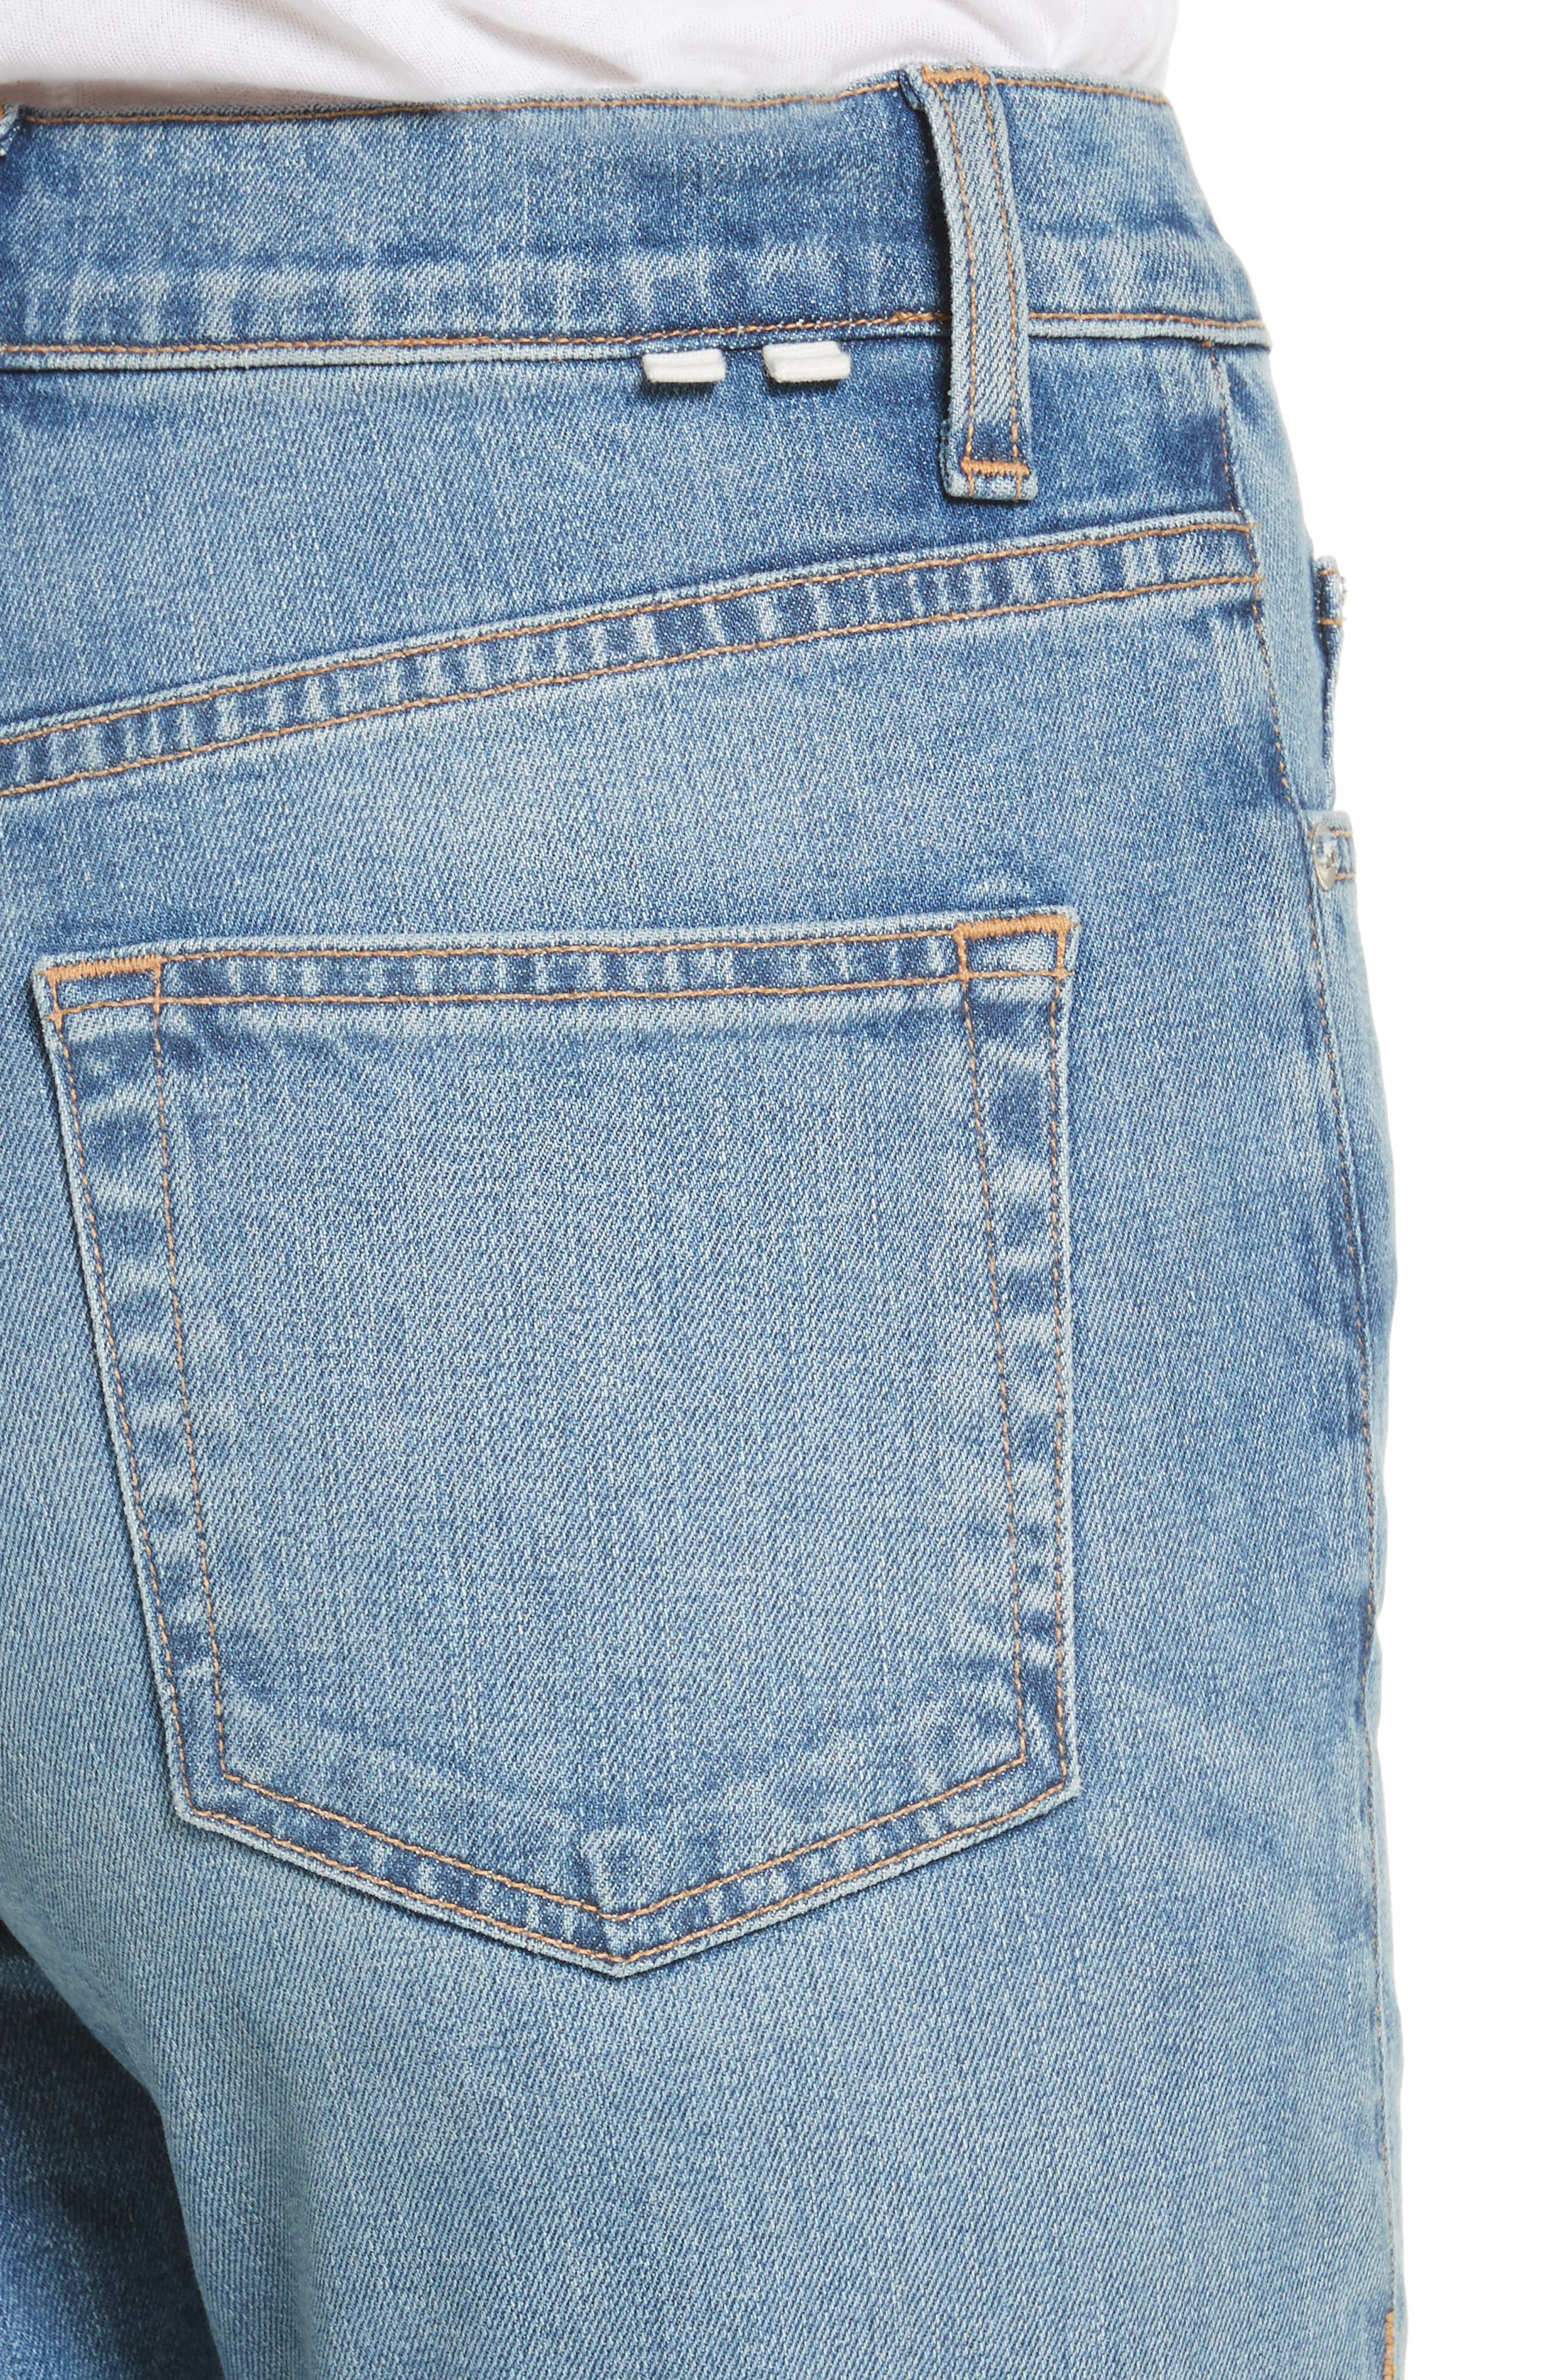 Alternate Image 4  - Proenza Schouler PSWL Straight Leg Jeans